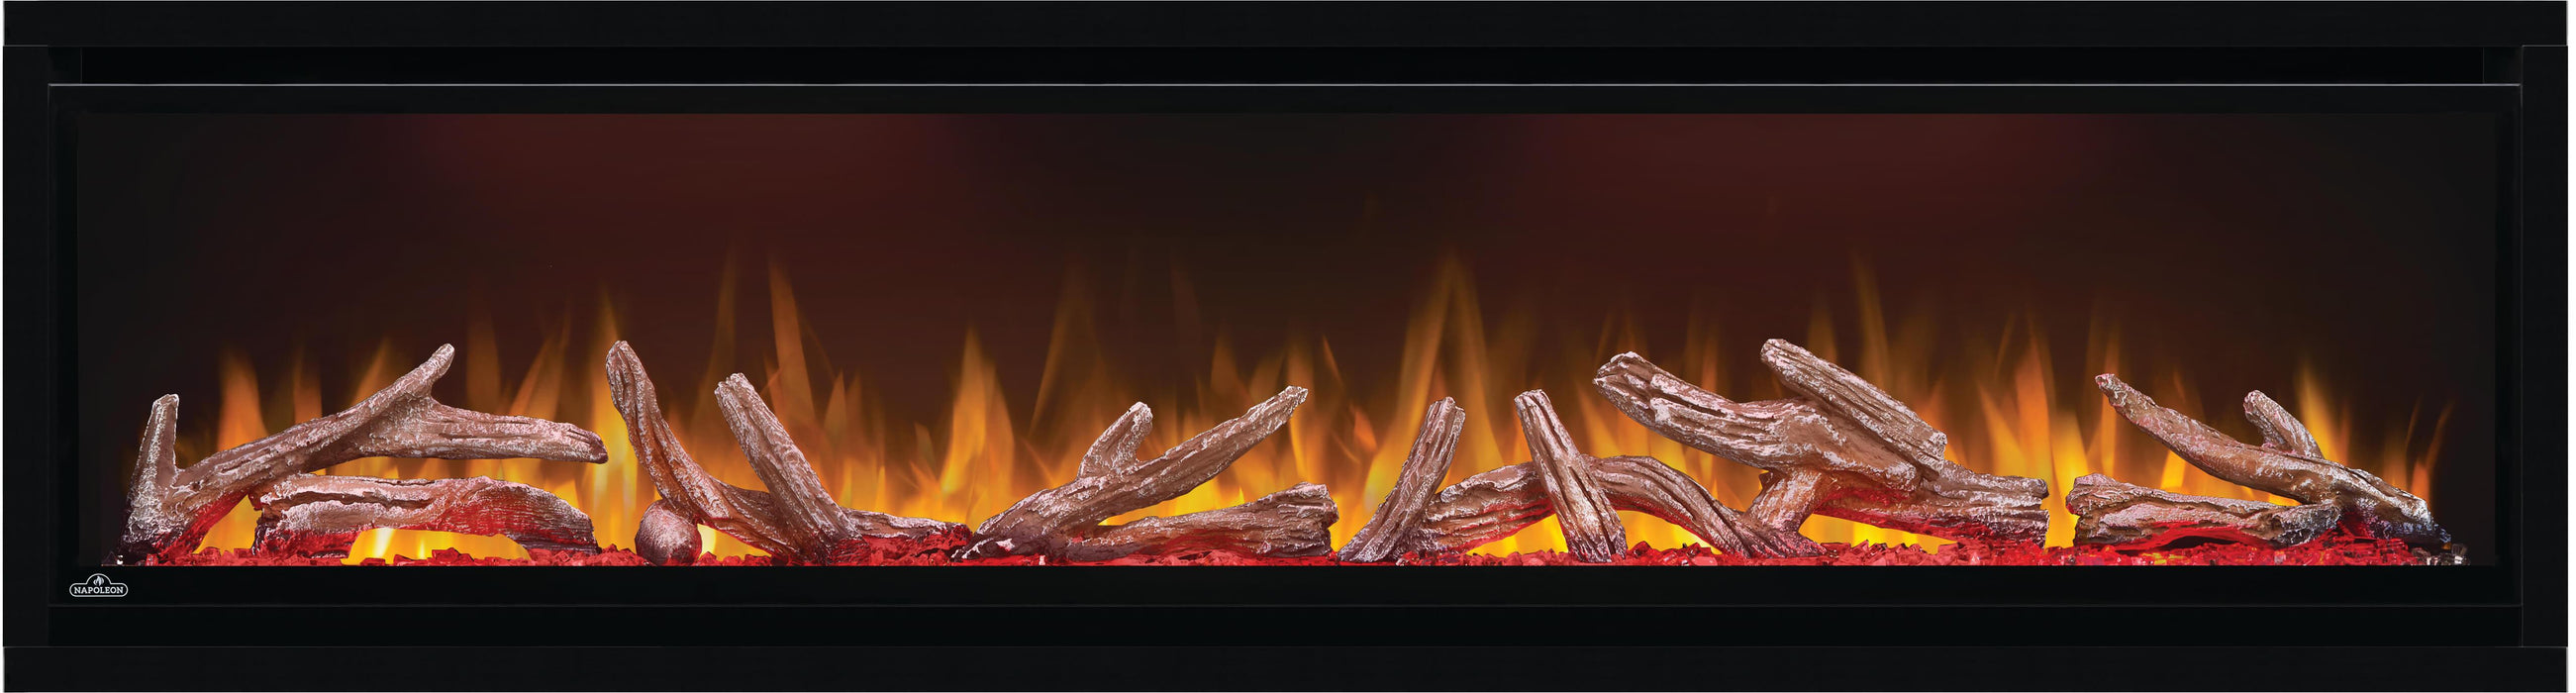 Napoleon Alluravision 60-In Deep Depth Wall Mount Electric Fireplace NEFL60CHD